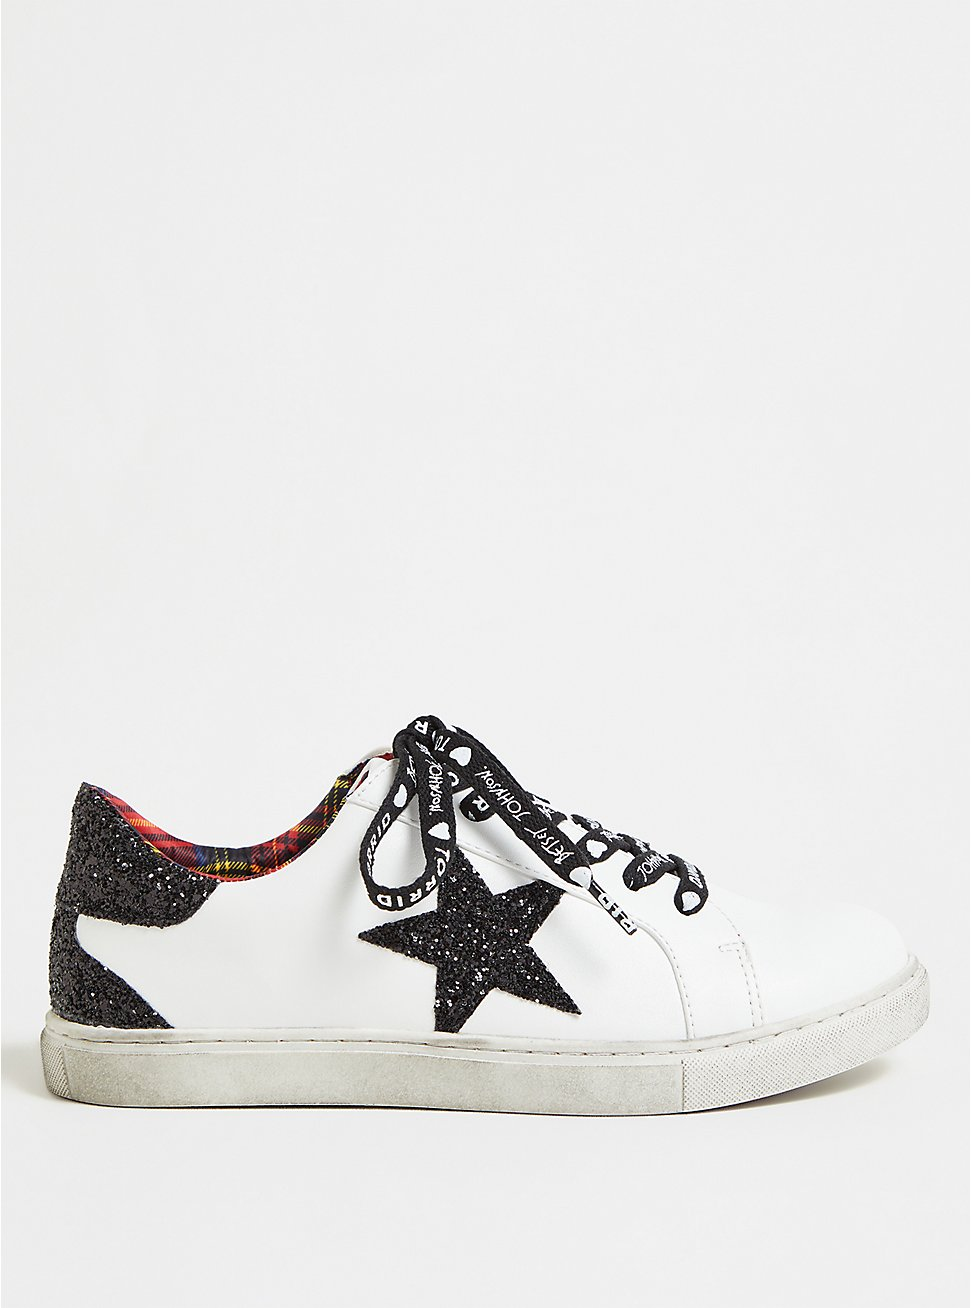 Betsey Johnson White Faux Leather Glitter Star Distressed Sneaker (WW), WHITE, hi-res